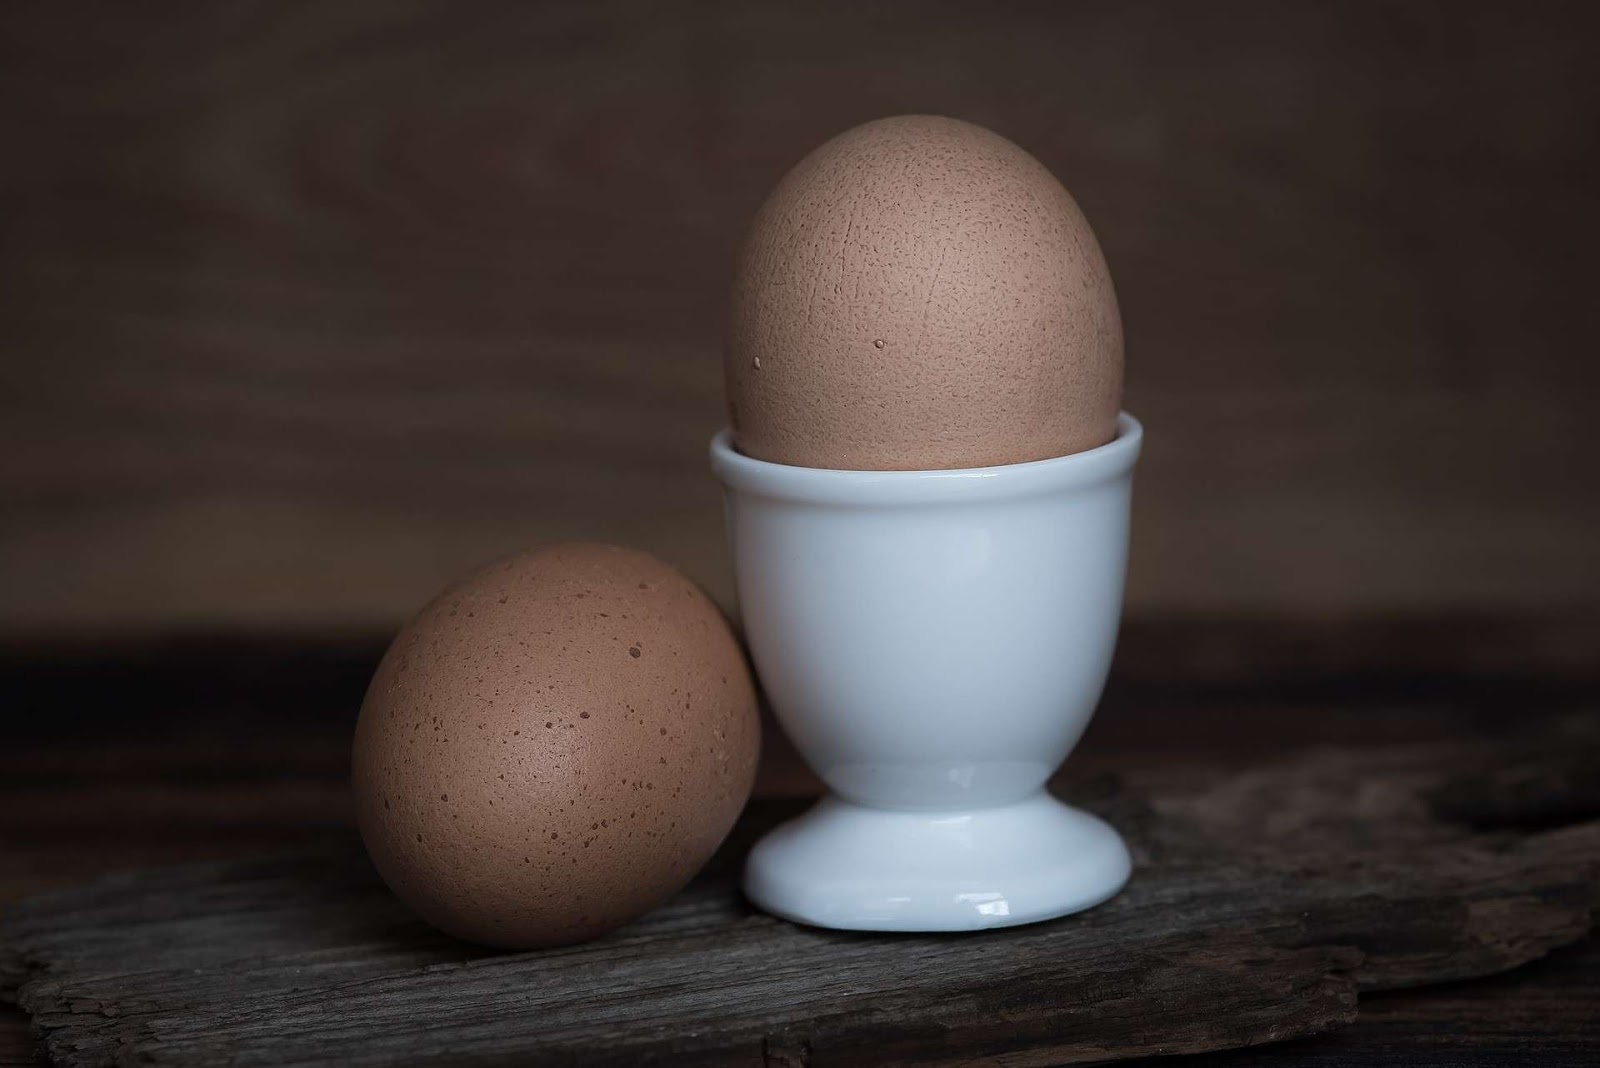 How Can An Egg Defy Gravity?